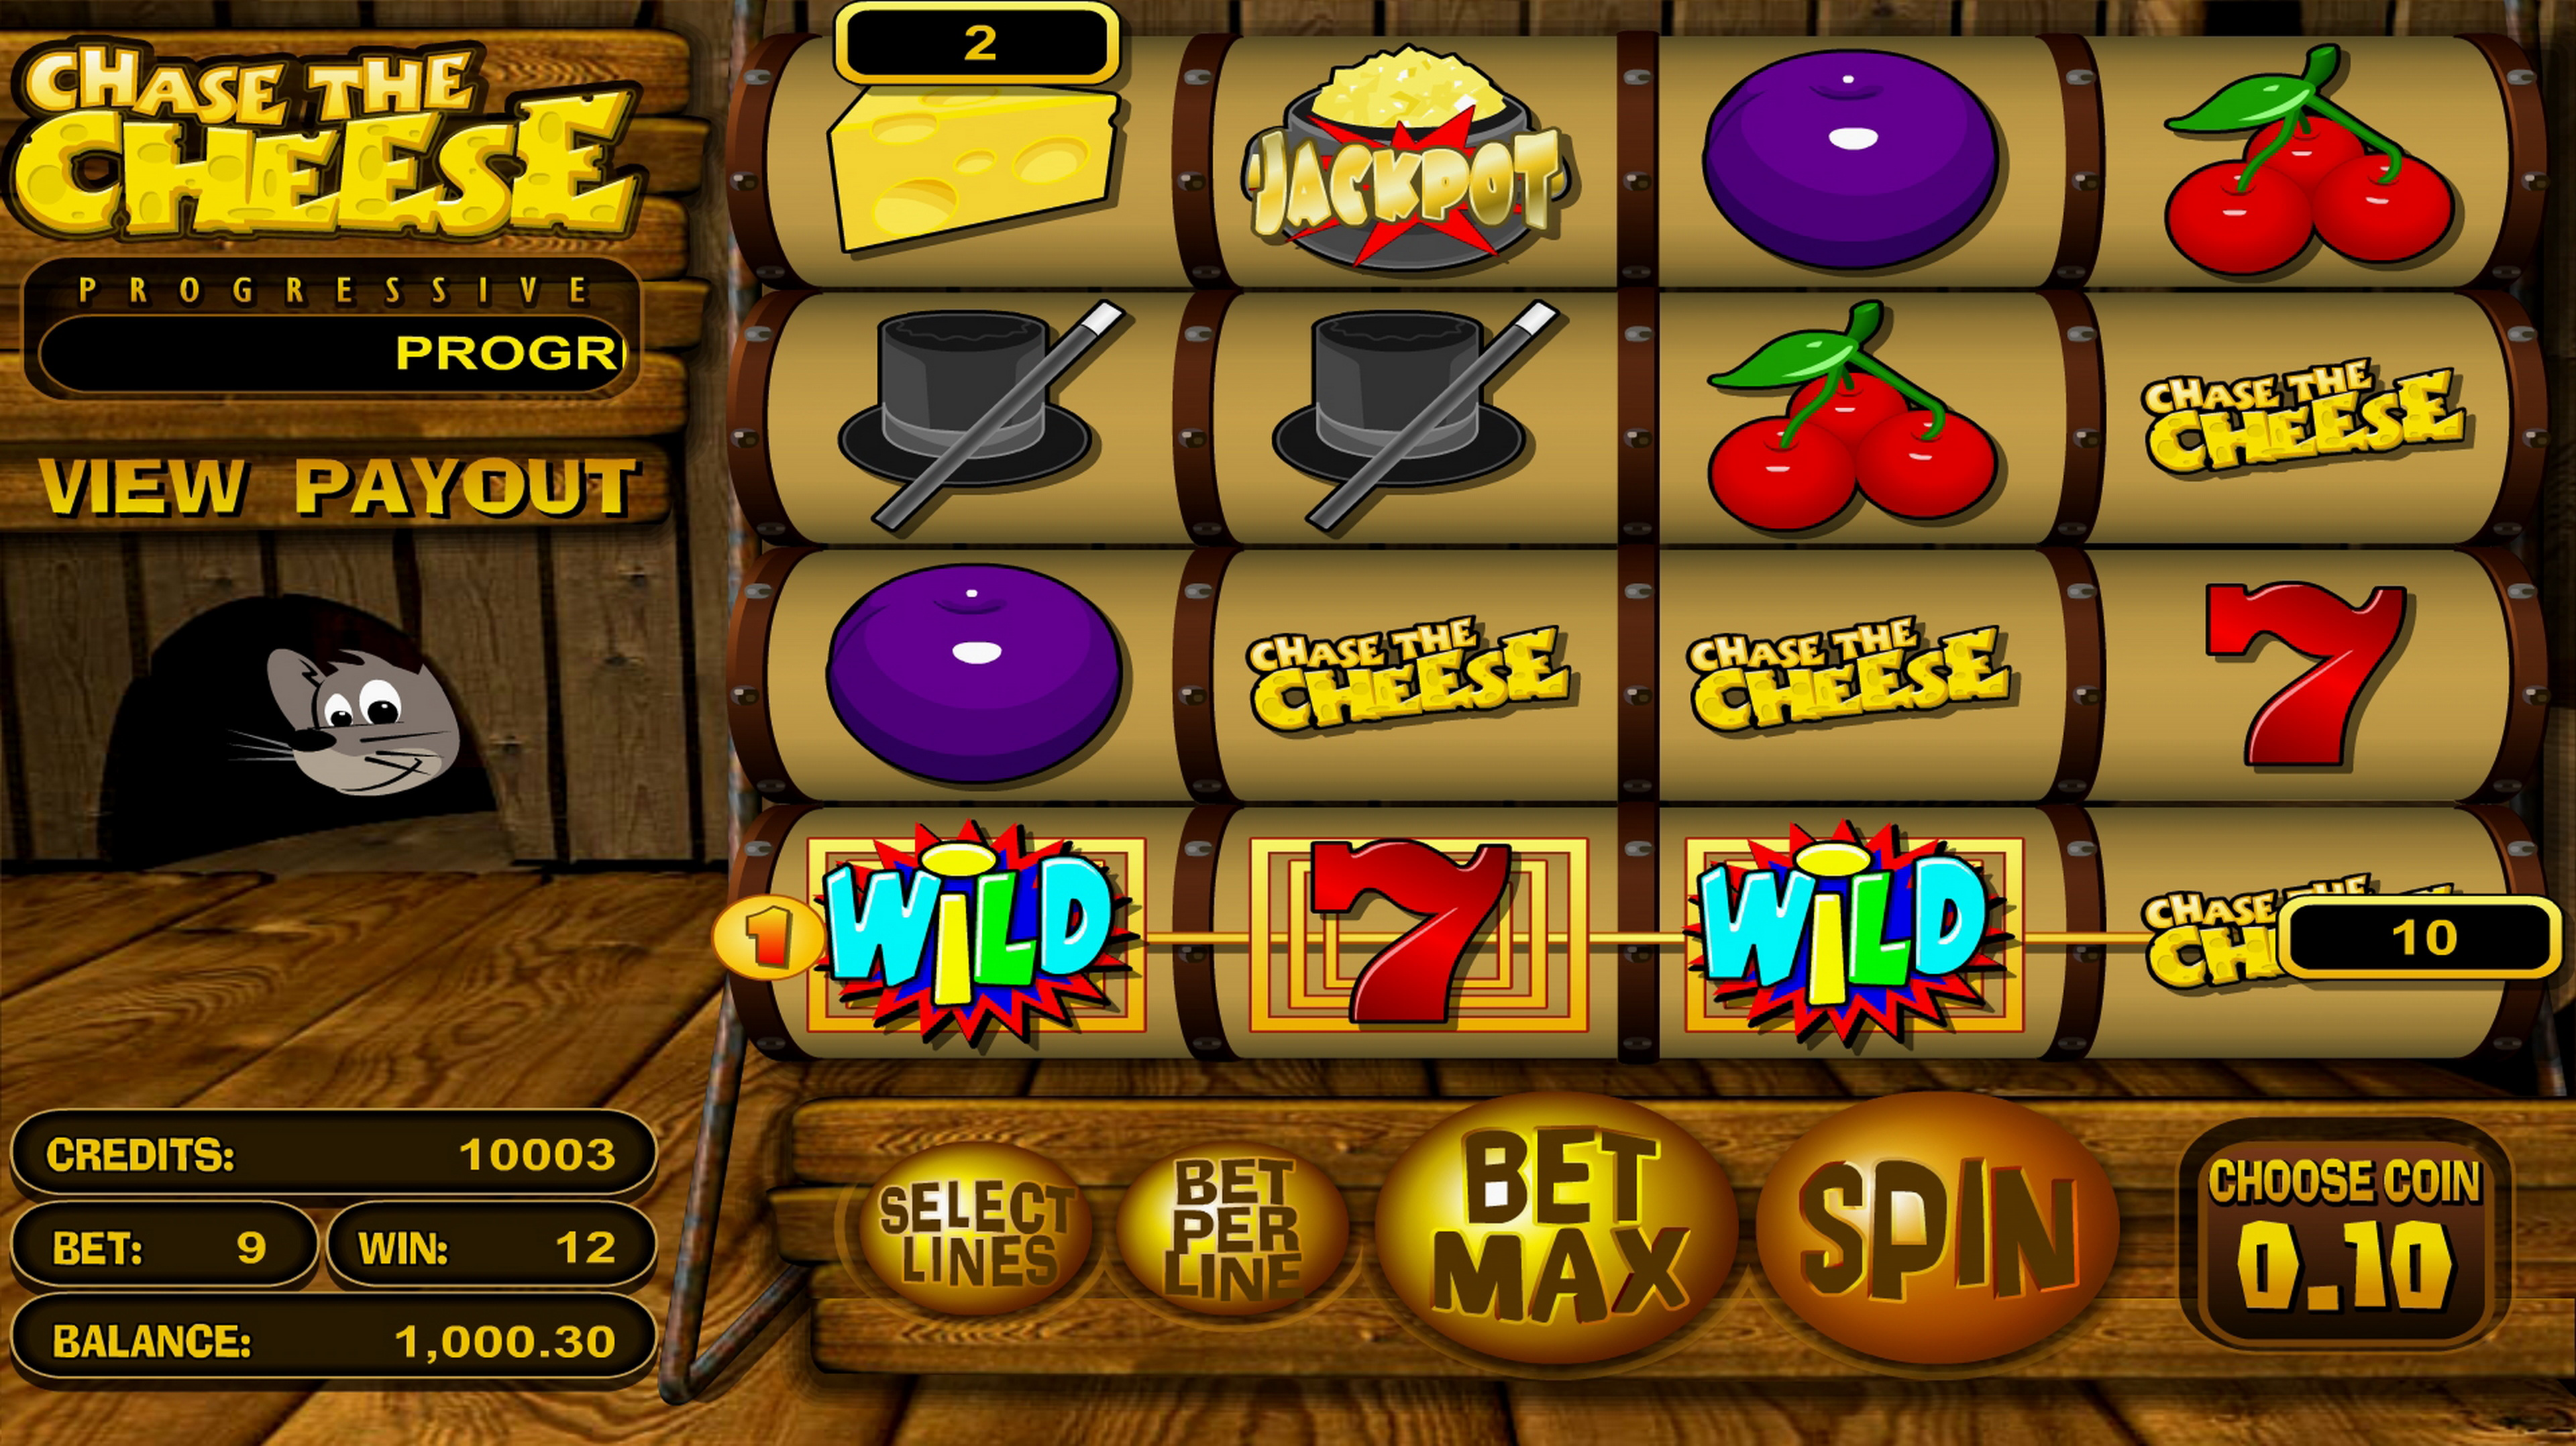 Win Money in Chase the Cheese Free Slot Game by Betsoft